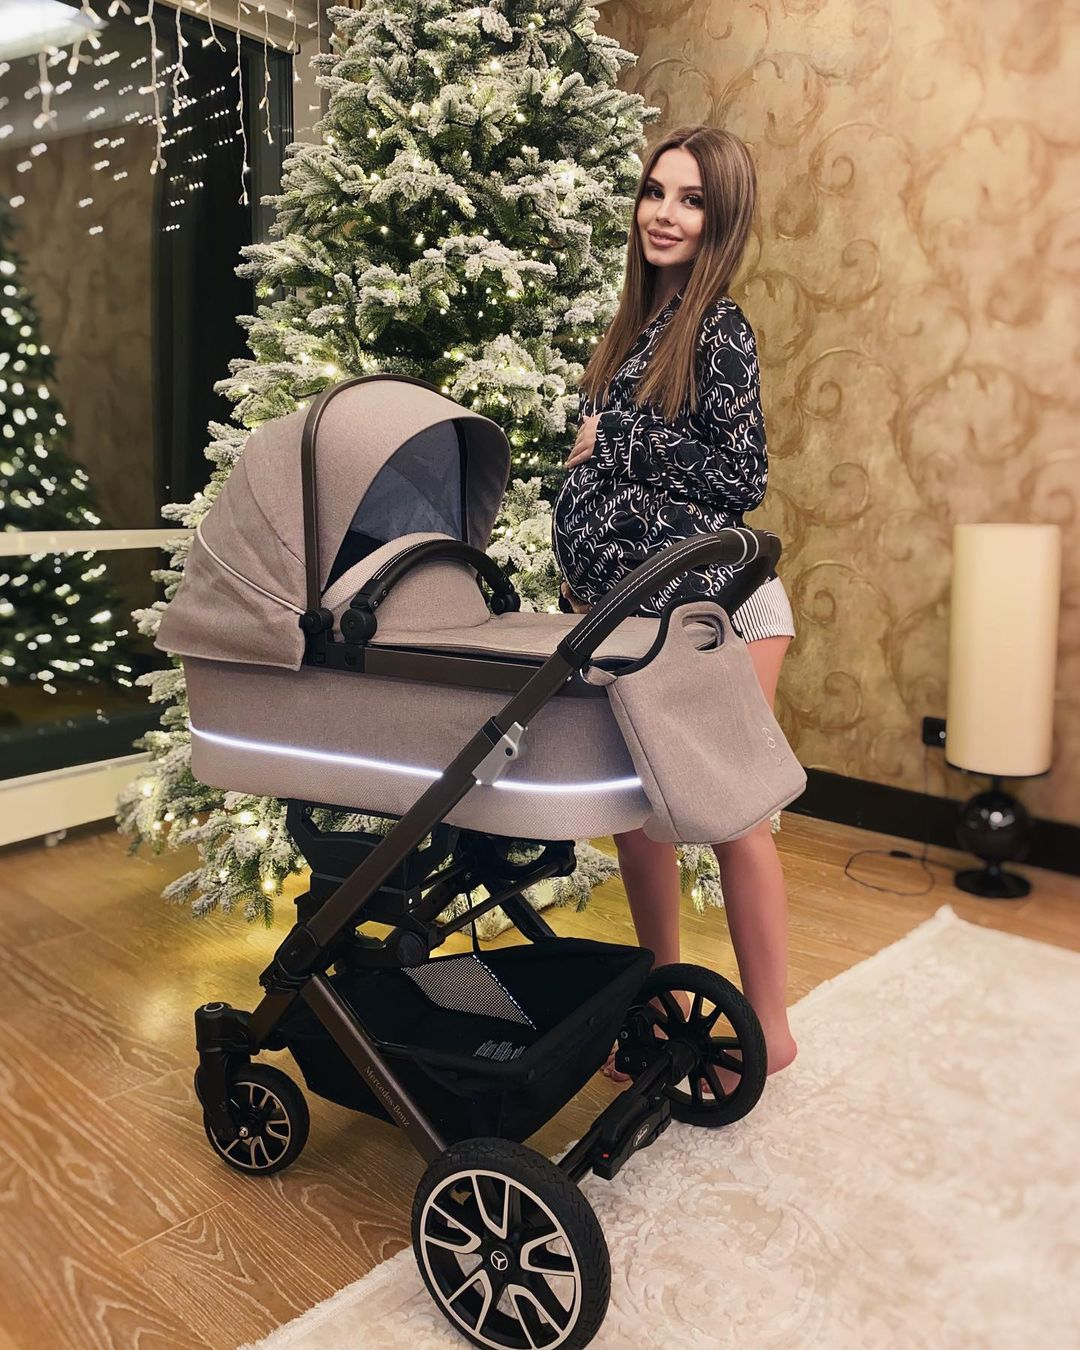 Arseny Shulgin bought a Mercedes-Benz and Hartan stroller for his future daughter